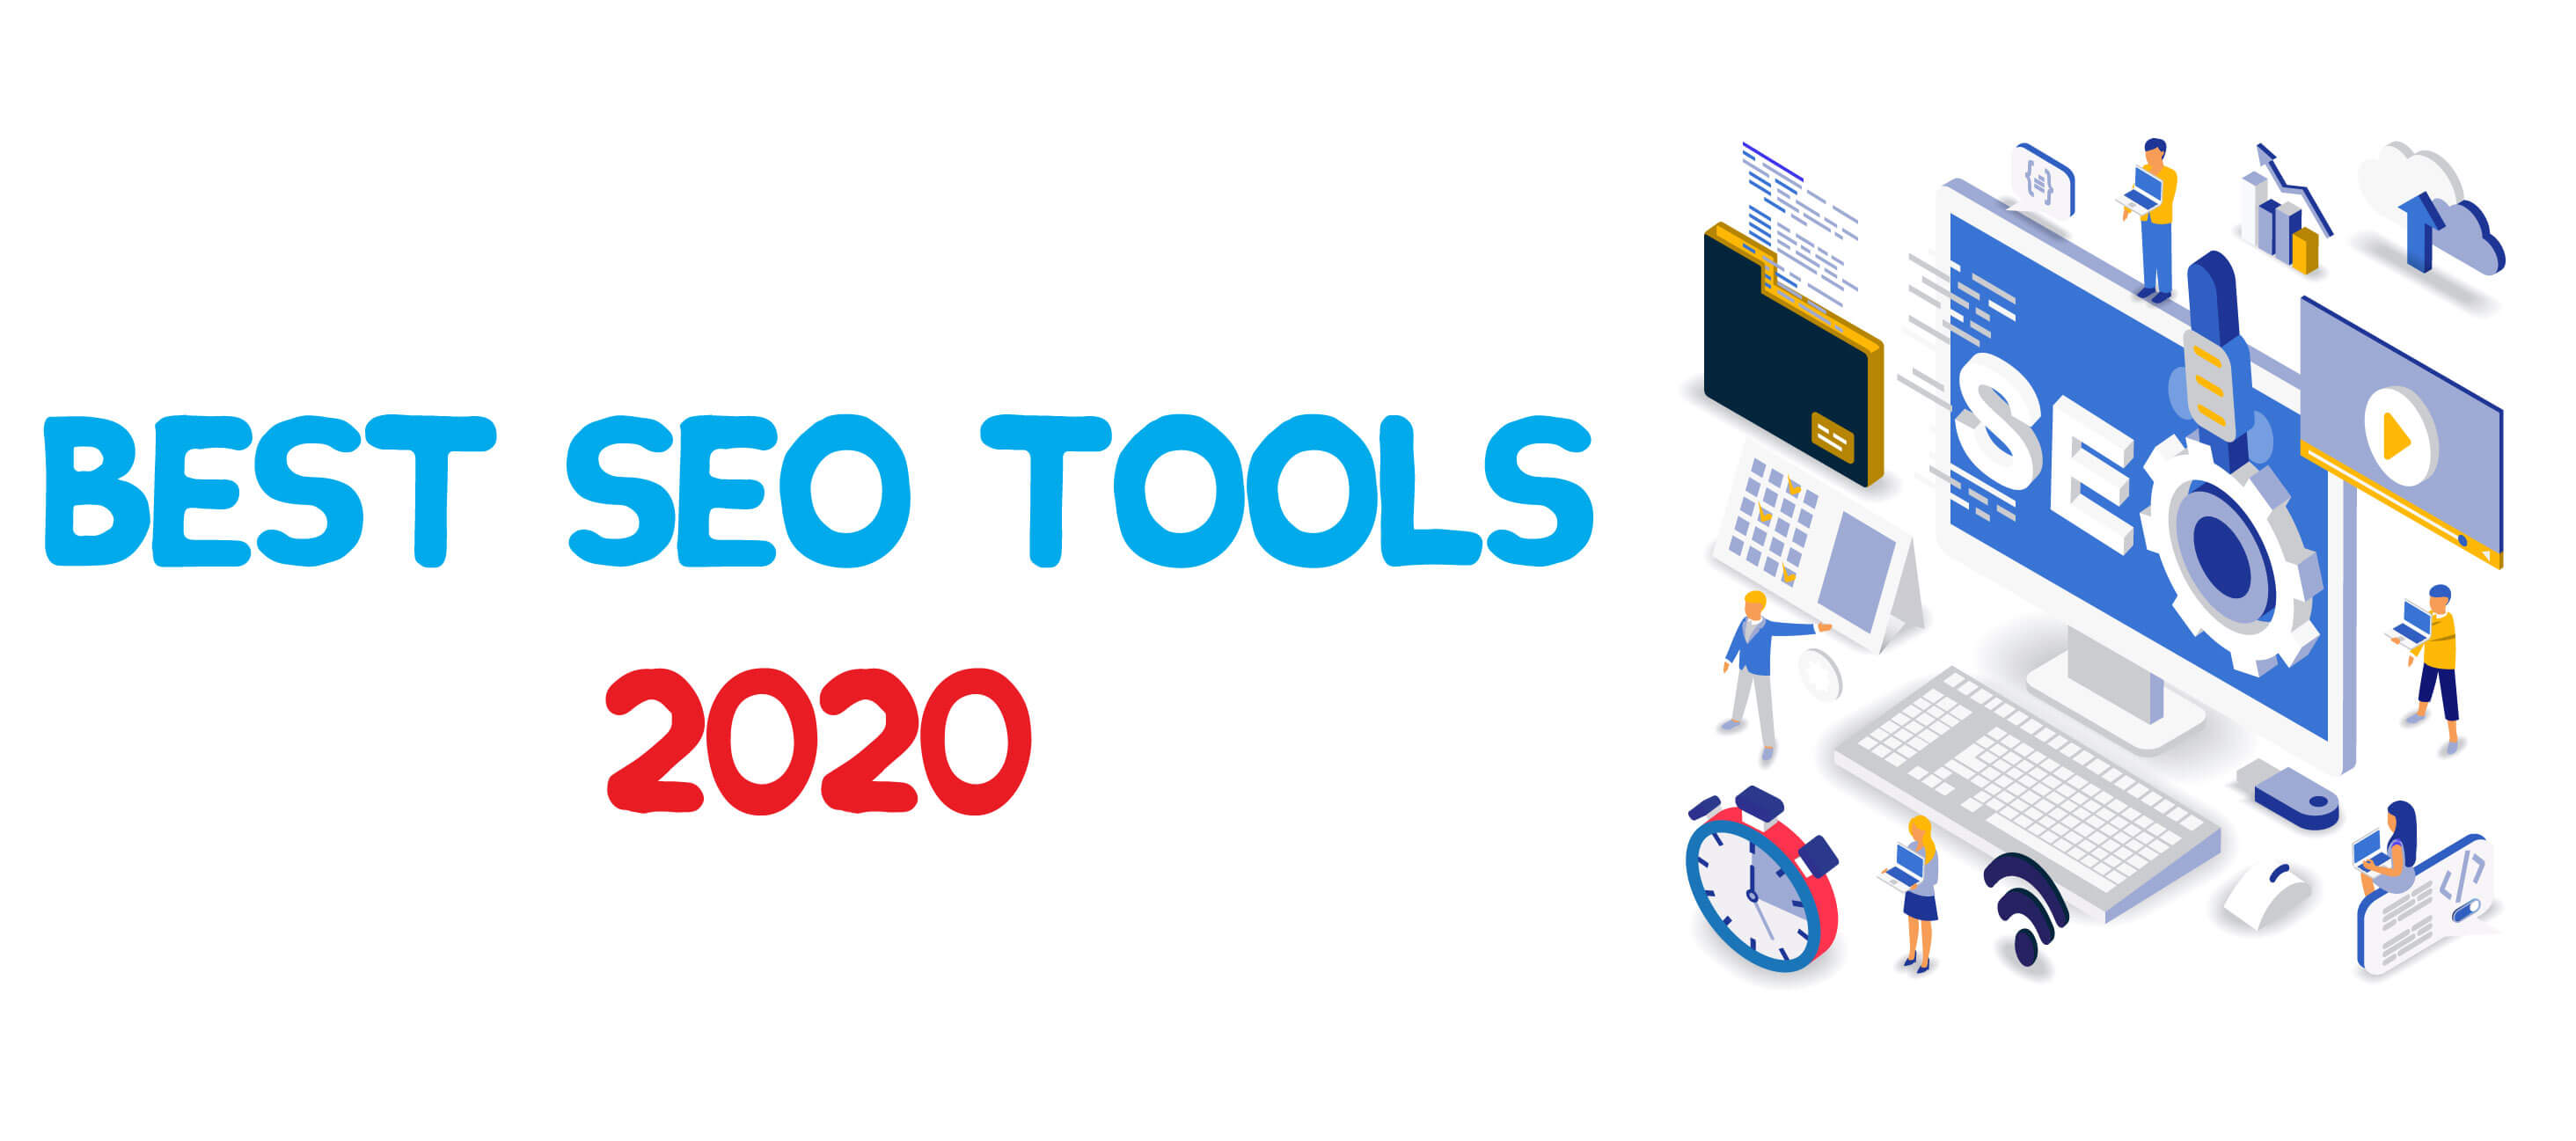 best seo tools 2020